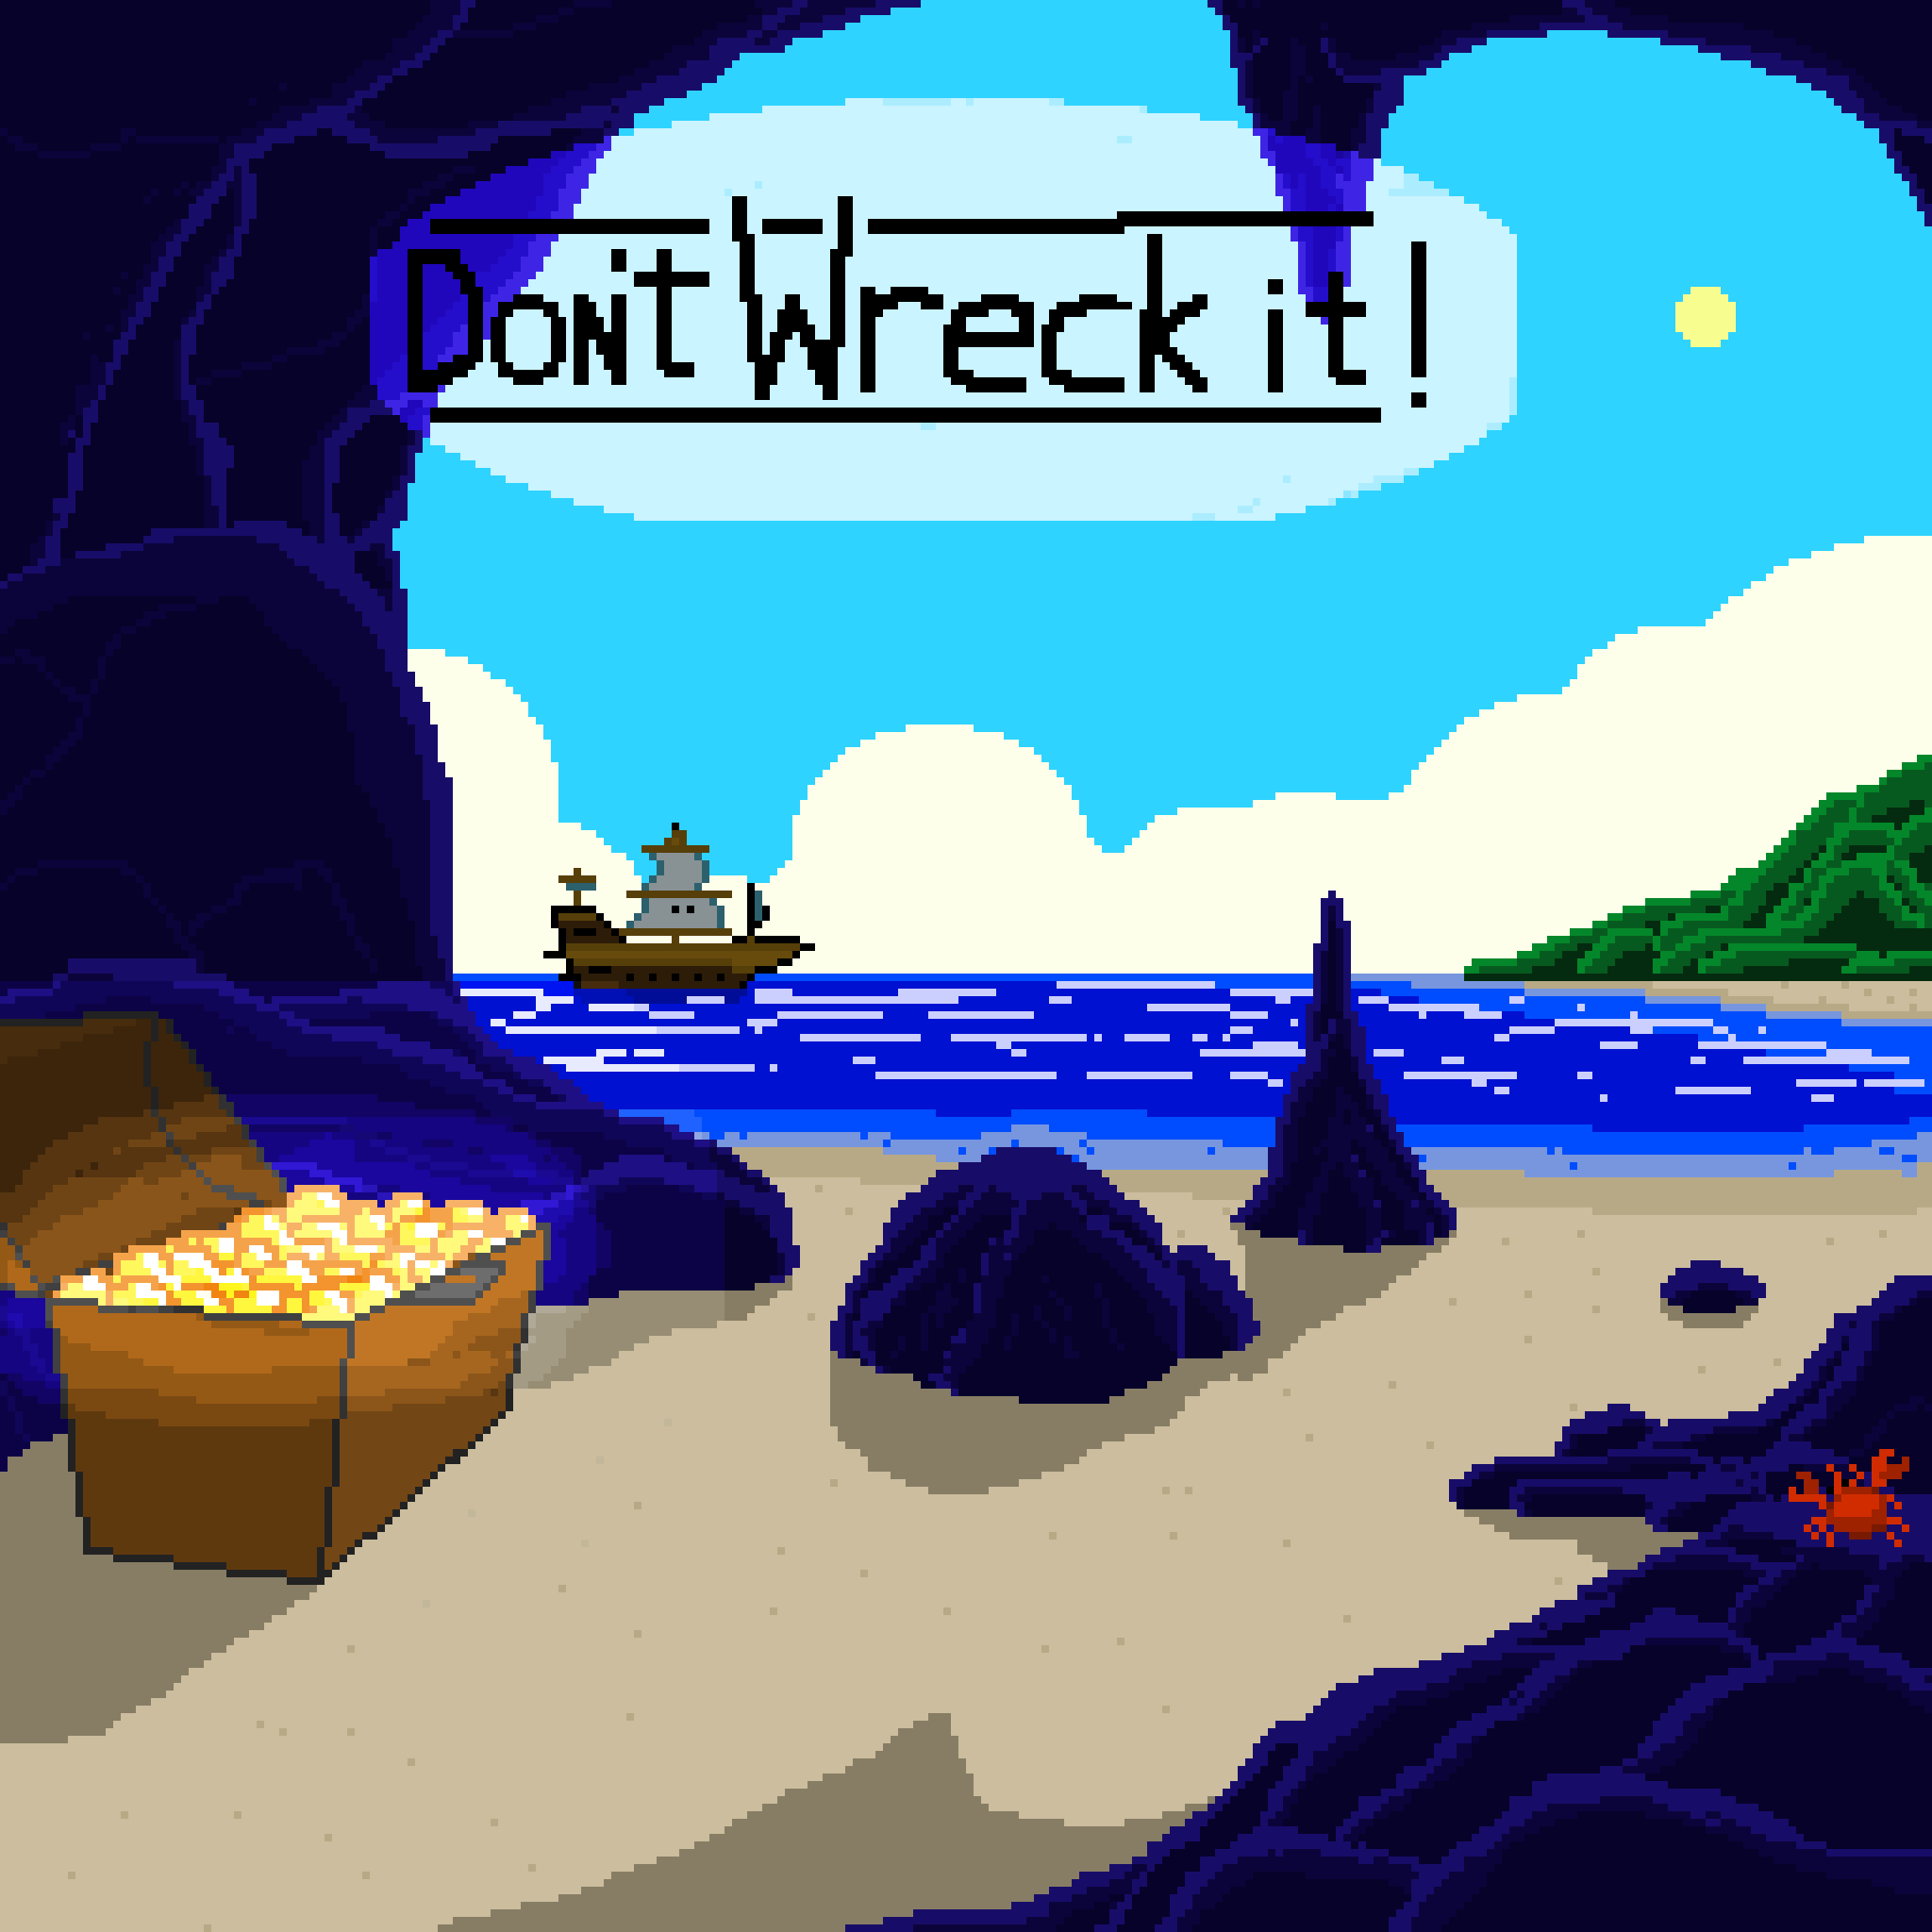 Don't wreck it!